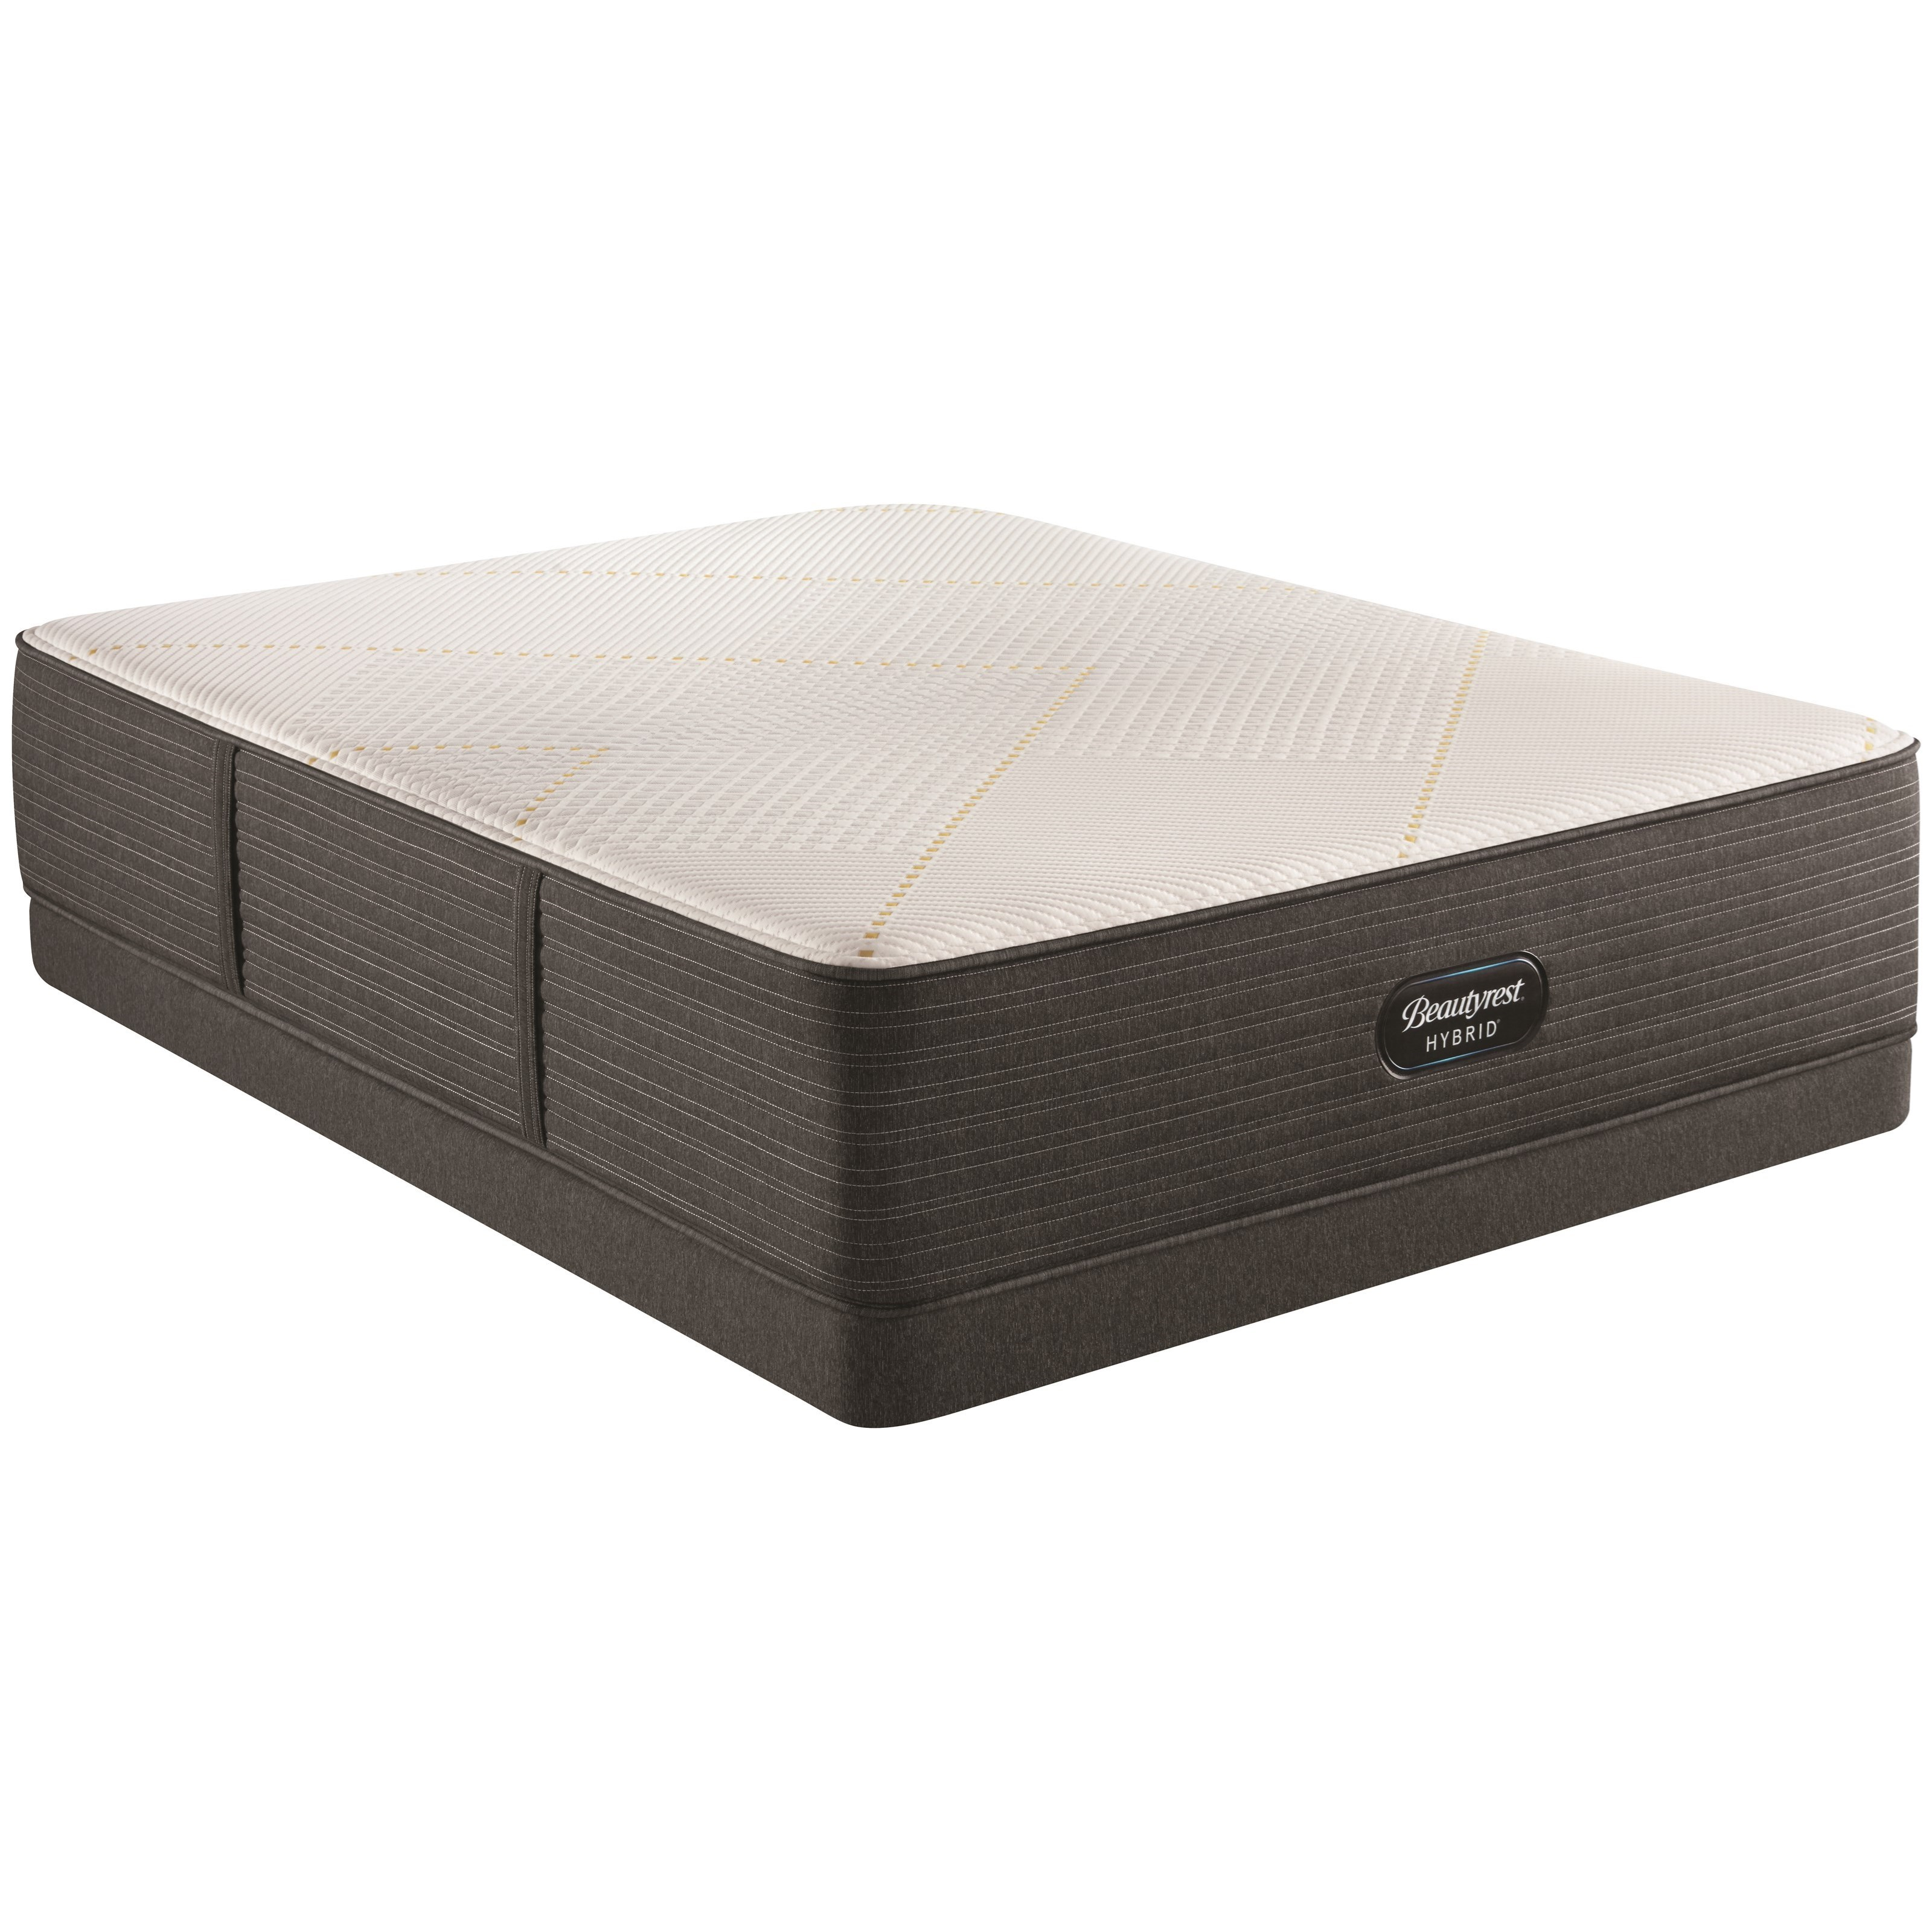 "BRX3000-IM Ultra Plush Hybrid Queen 14 1/2"" Hybrid Low Profile Set by Beautyrest at HomeWorld Furniture"